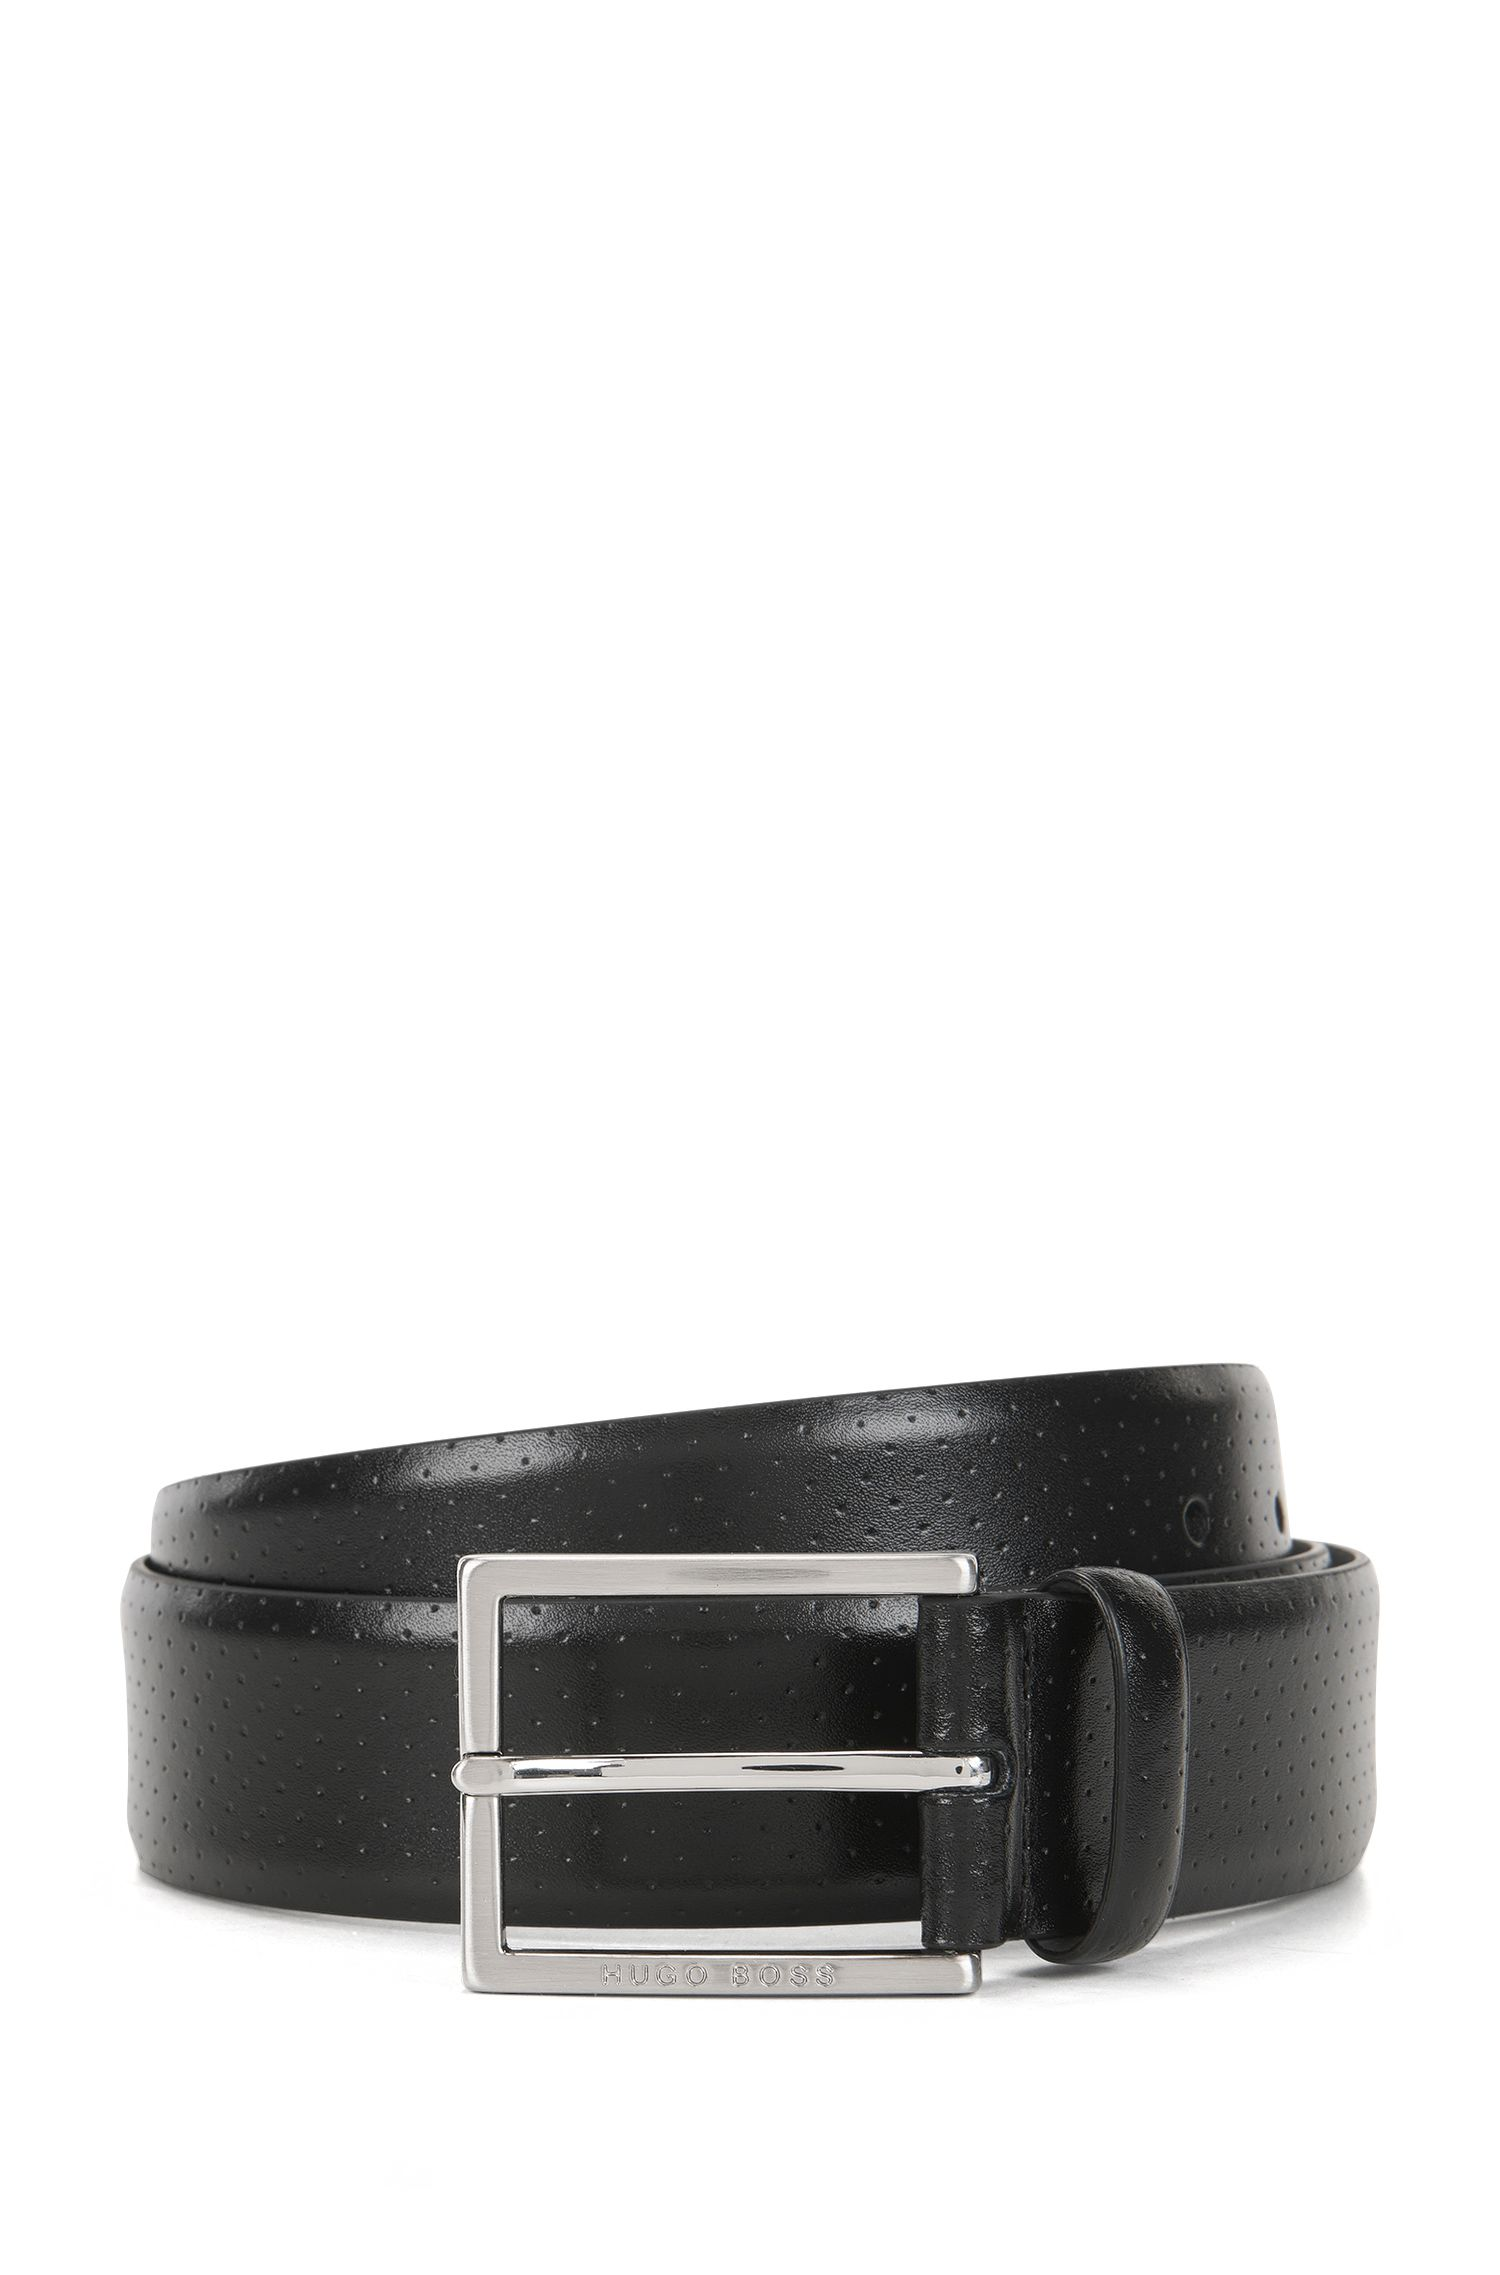 Perforated leather pin-buckle belt